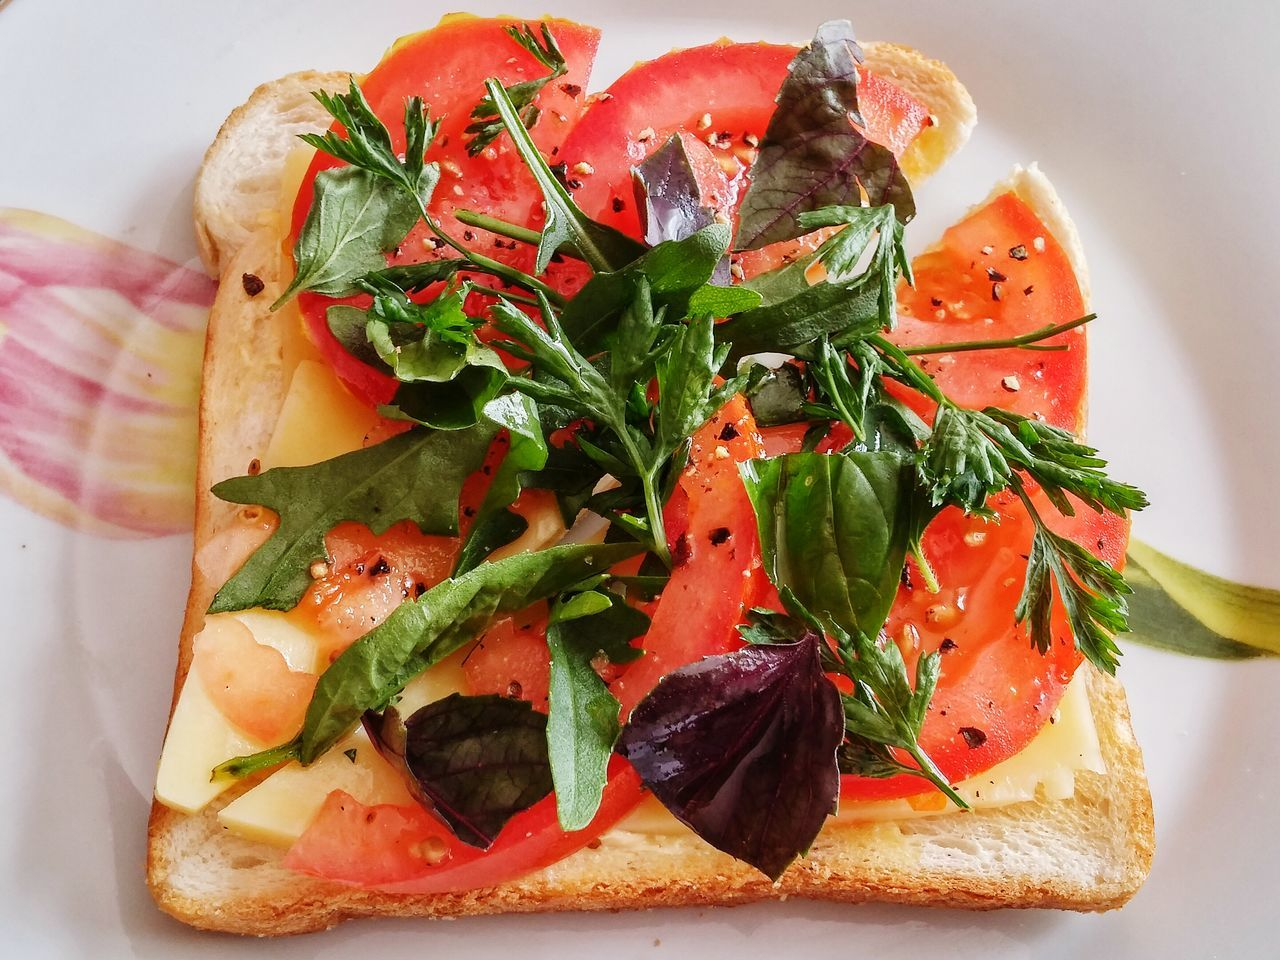 made with love for me Nomnombomb Food And Drink Brunch Toastbread Cheese Tomato Parsley Rocket Basil Purple Red Yellow Oregano Salt Ground Pepper Showcase: February Colour Image Vacations Table Good Morning Foodporn Food And Drinks New Zealand Olive Oil Delicious